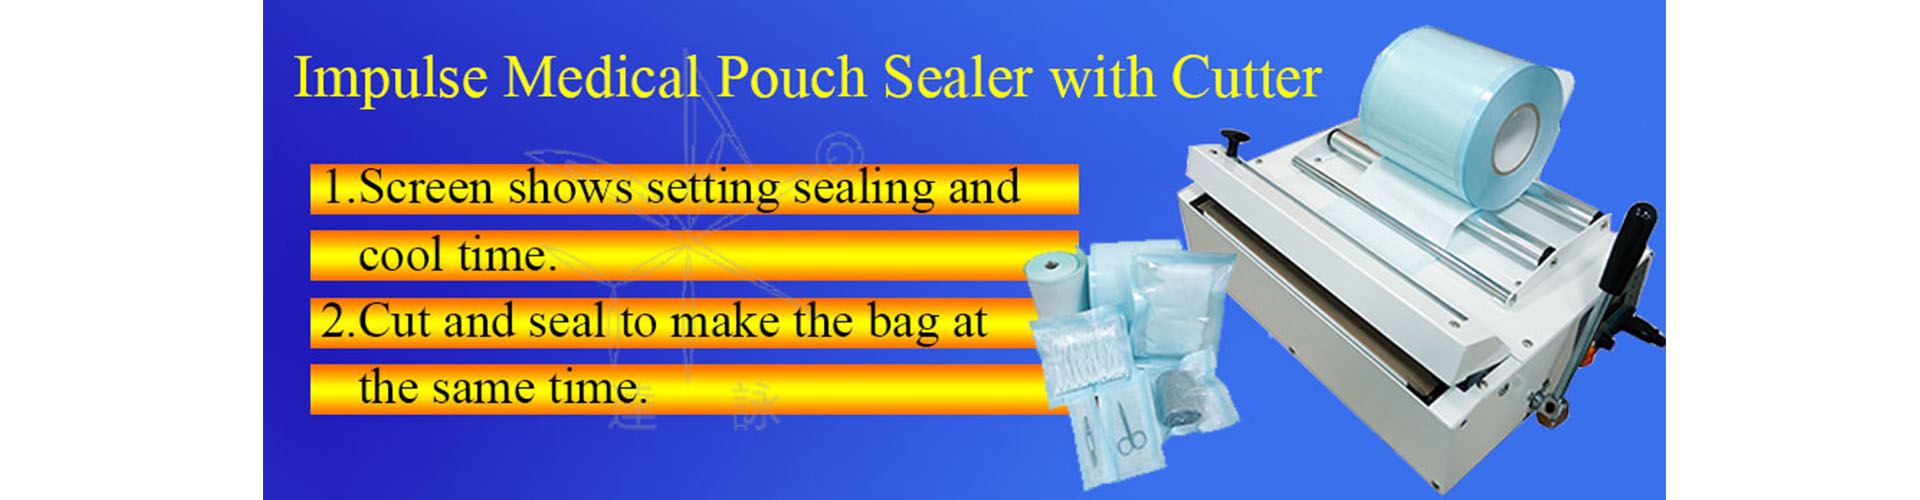 impulse medical pouch sealer with cutter